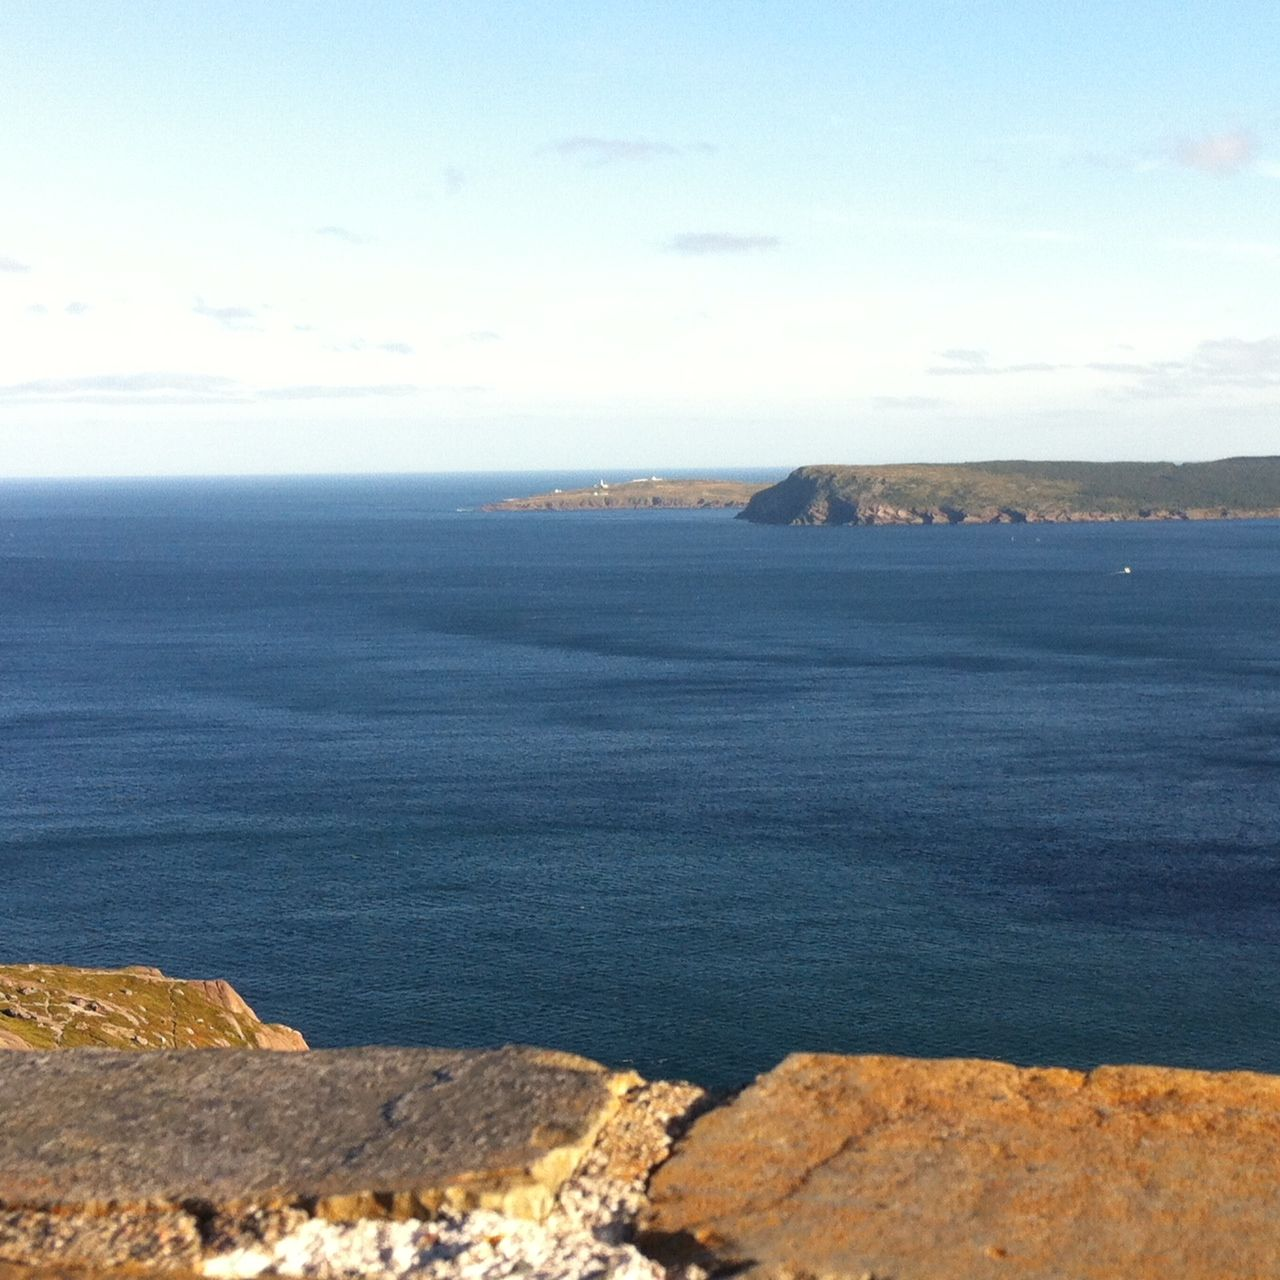 Figure 1. Cape Spear, Newfoundland - the eastern most point of land in North America as seen from Signal Hill, St. John's.